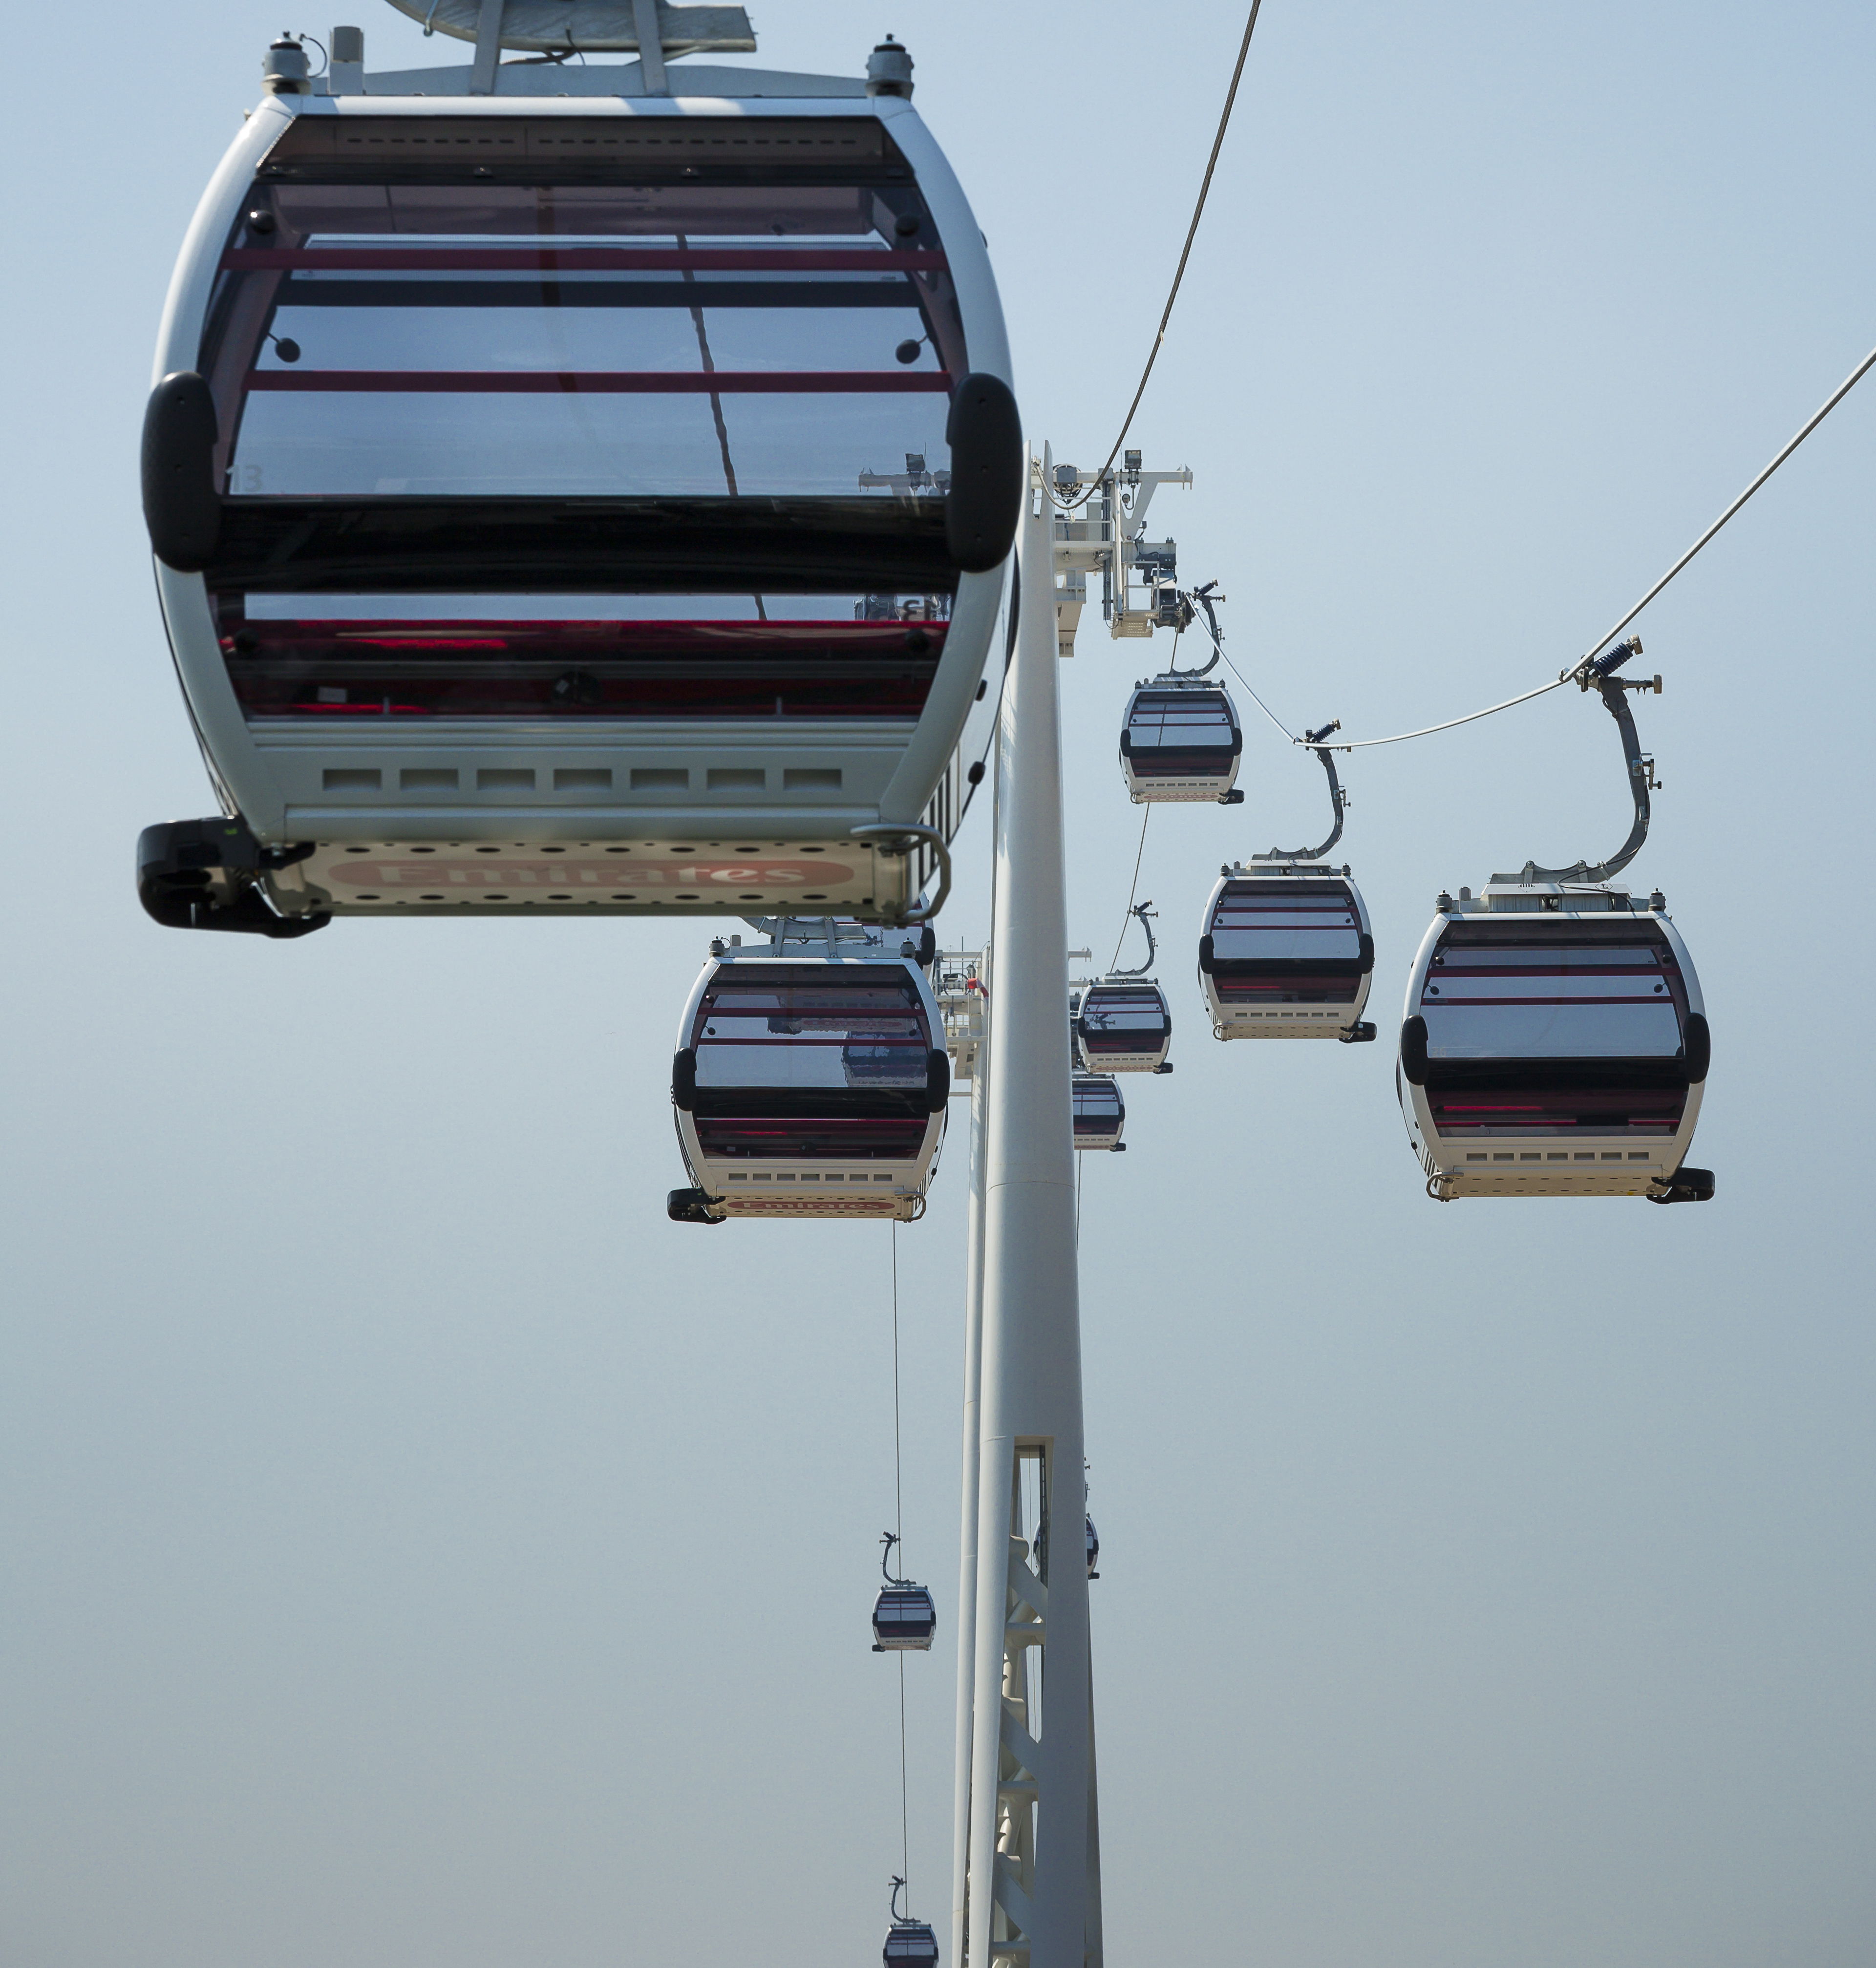 Cable Cars on traveling on route.